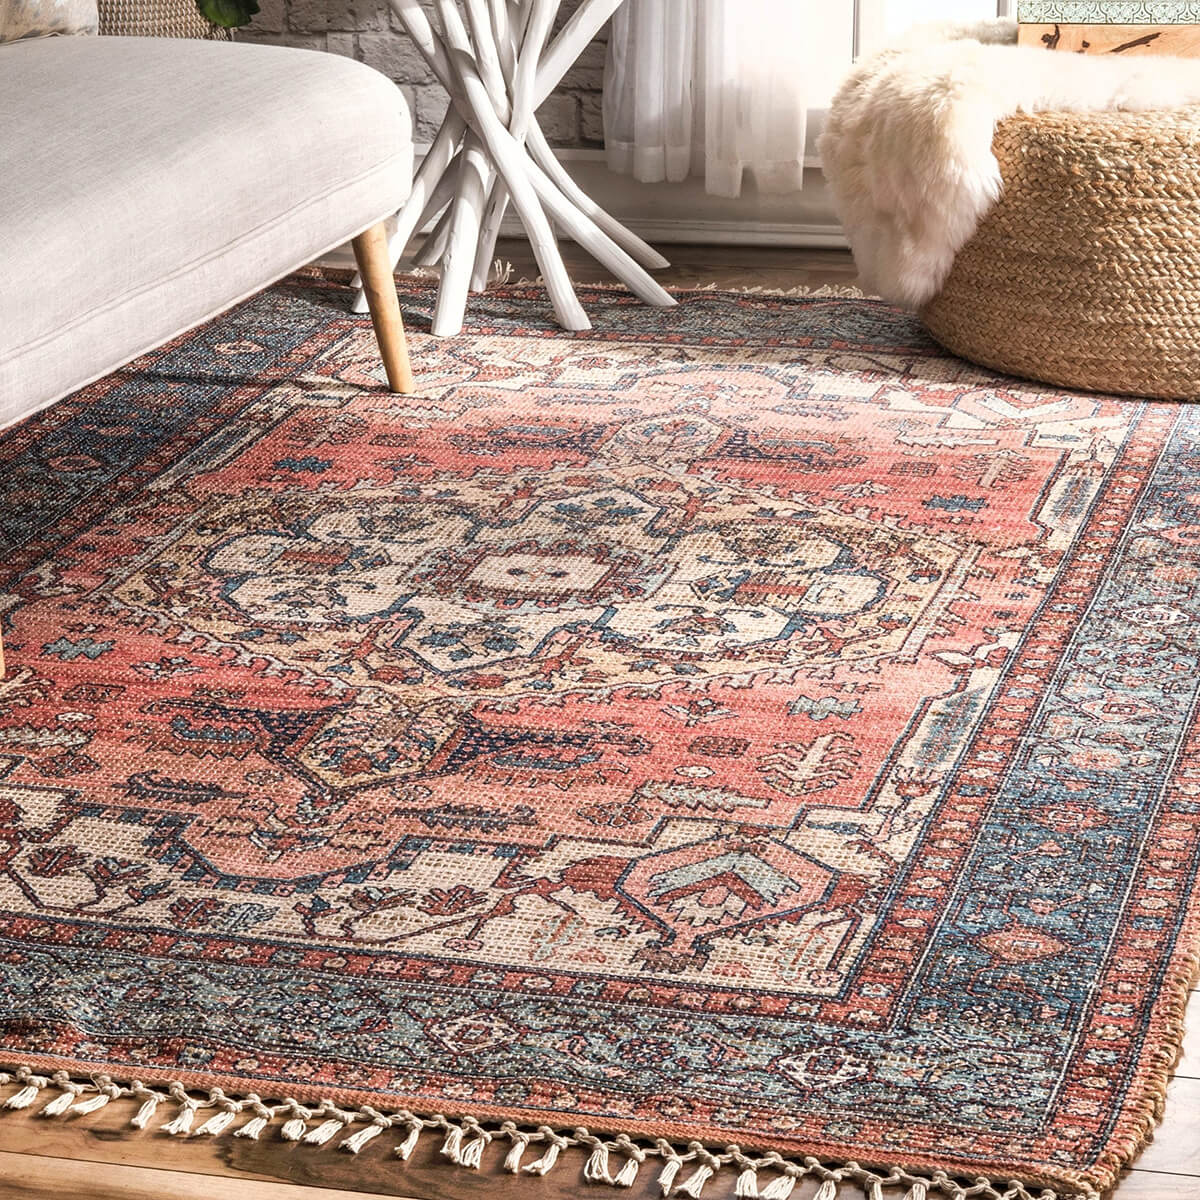 Gently Faded Vintage Floor Rug